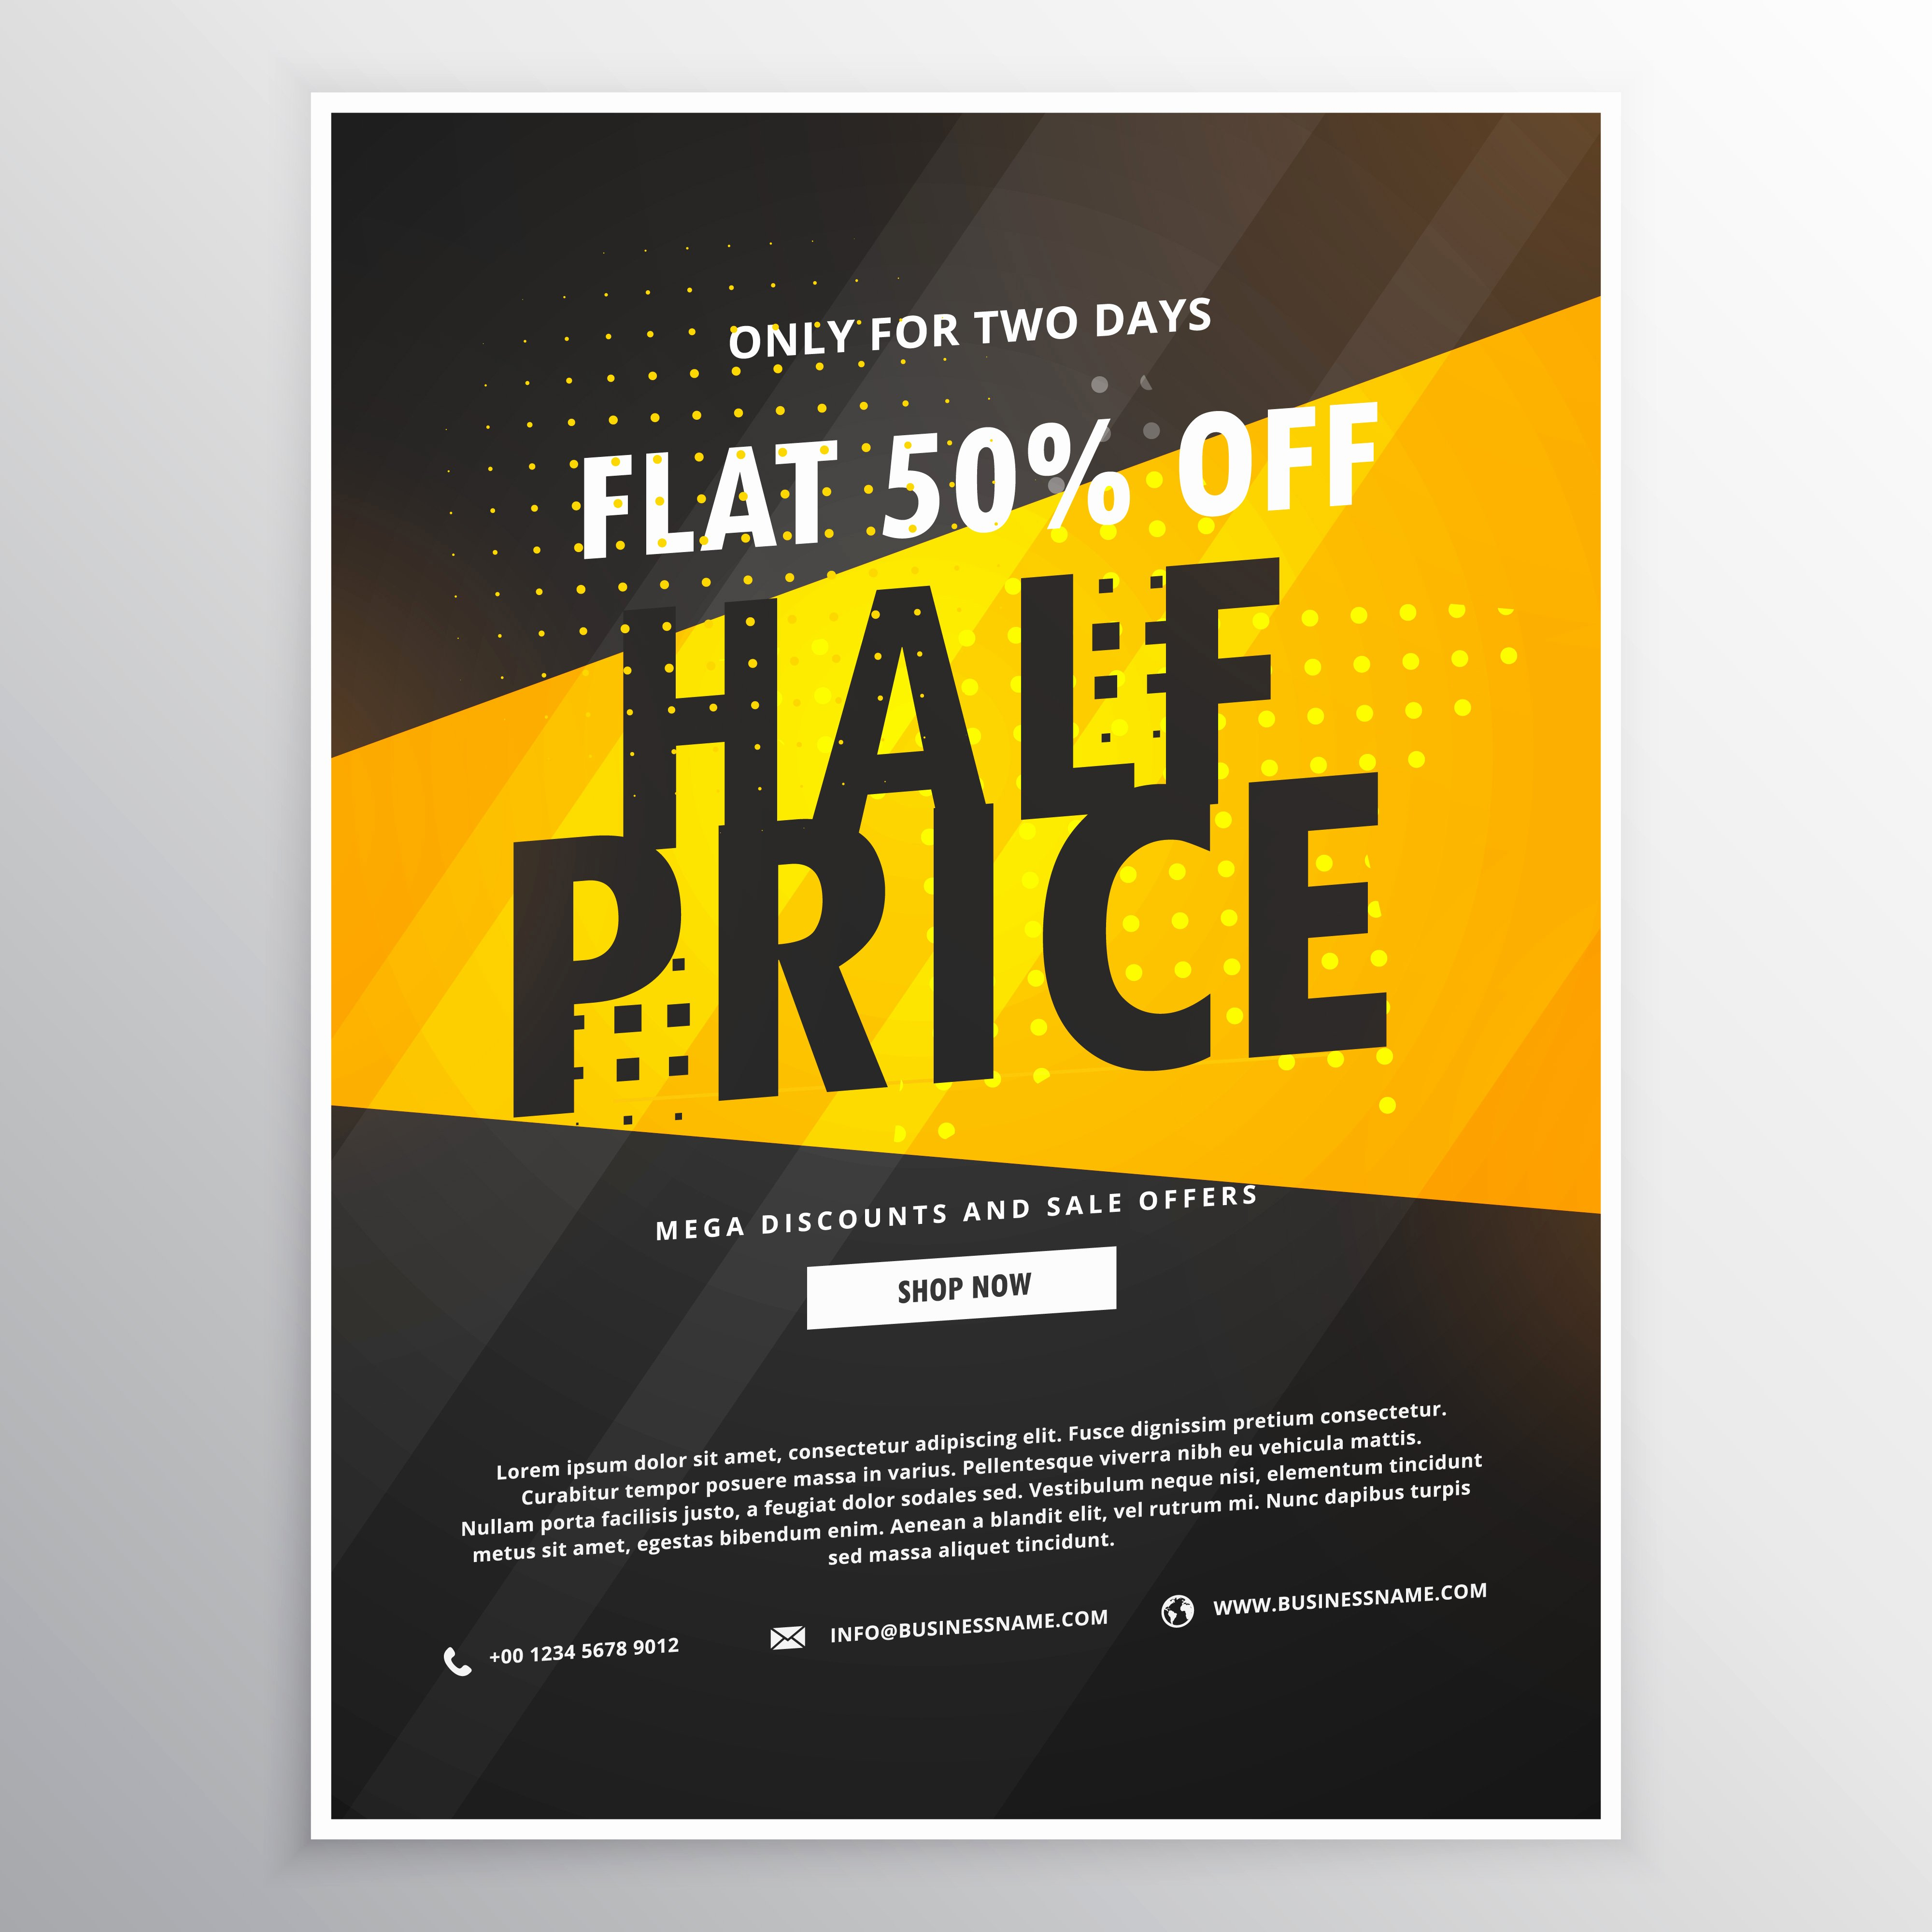 Promo Flyer Template Free Fresh Half Price Sale Brochure Flyer Promotional Template In